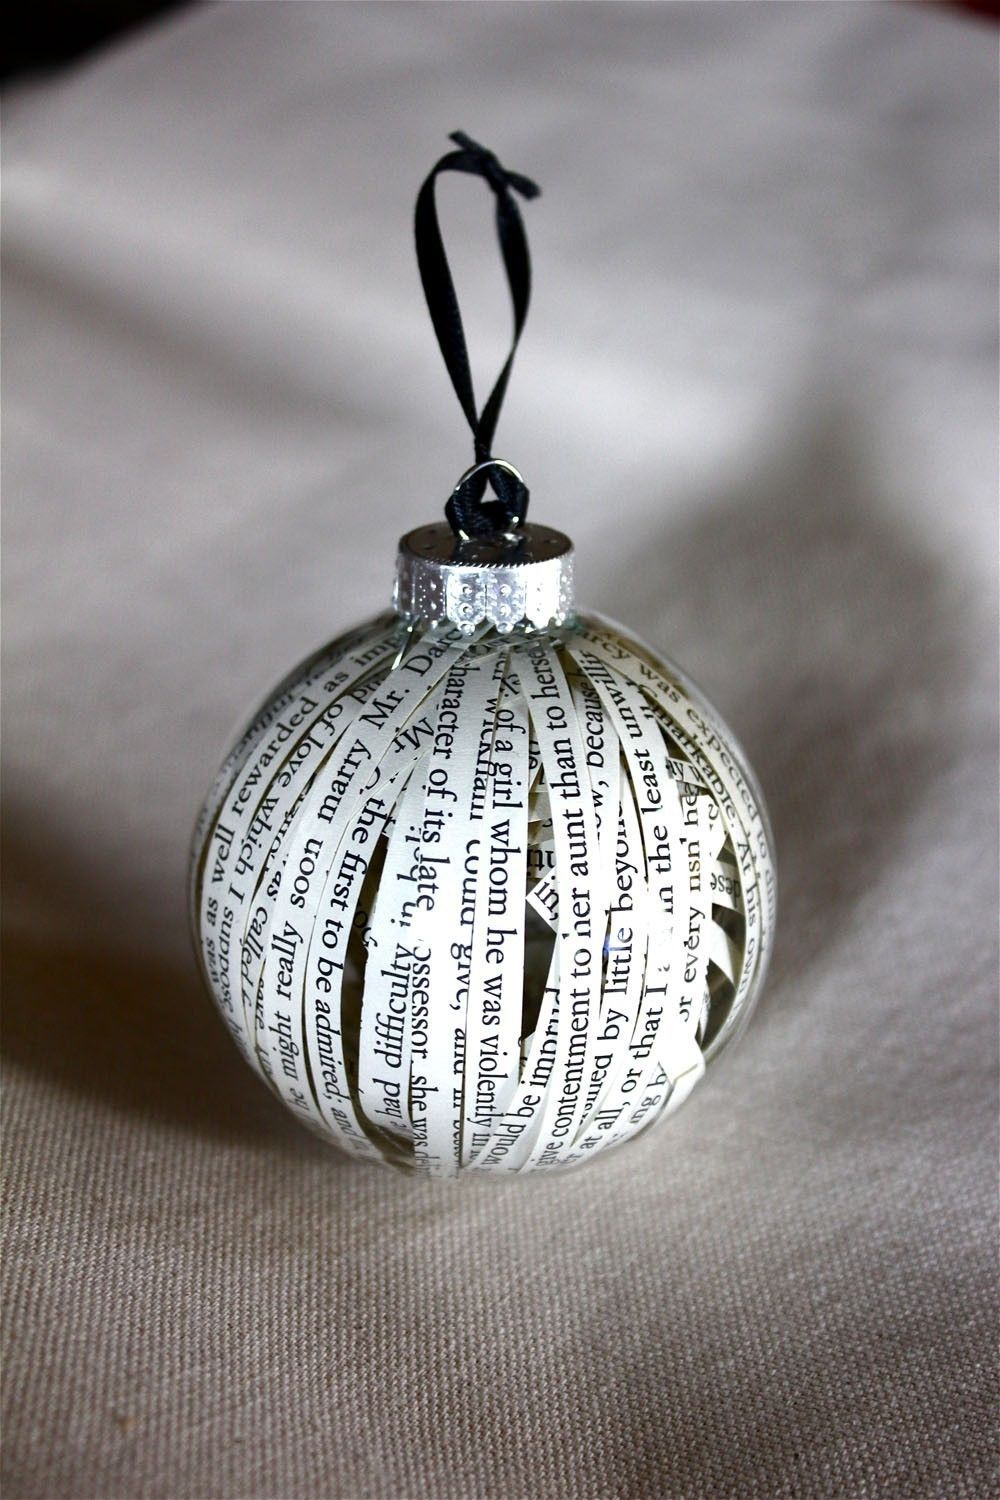 clear plastic ornament filled with strips of paper from a